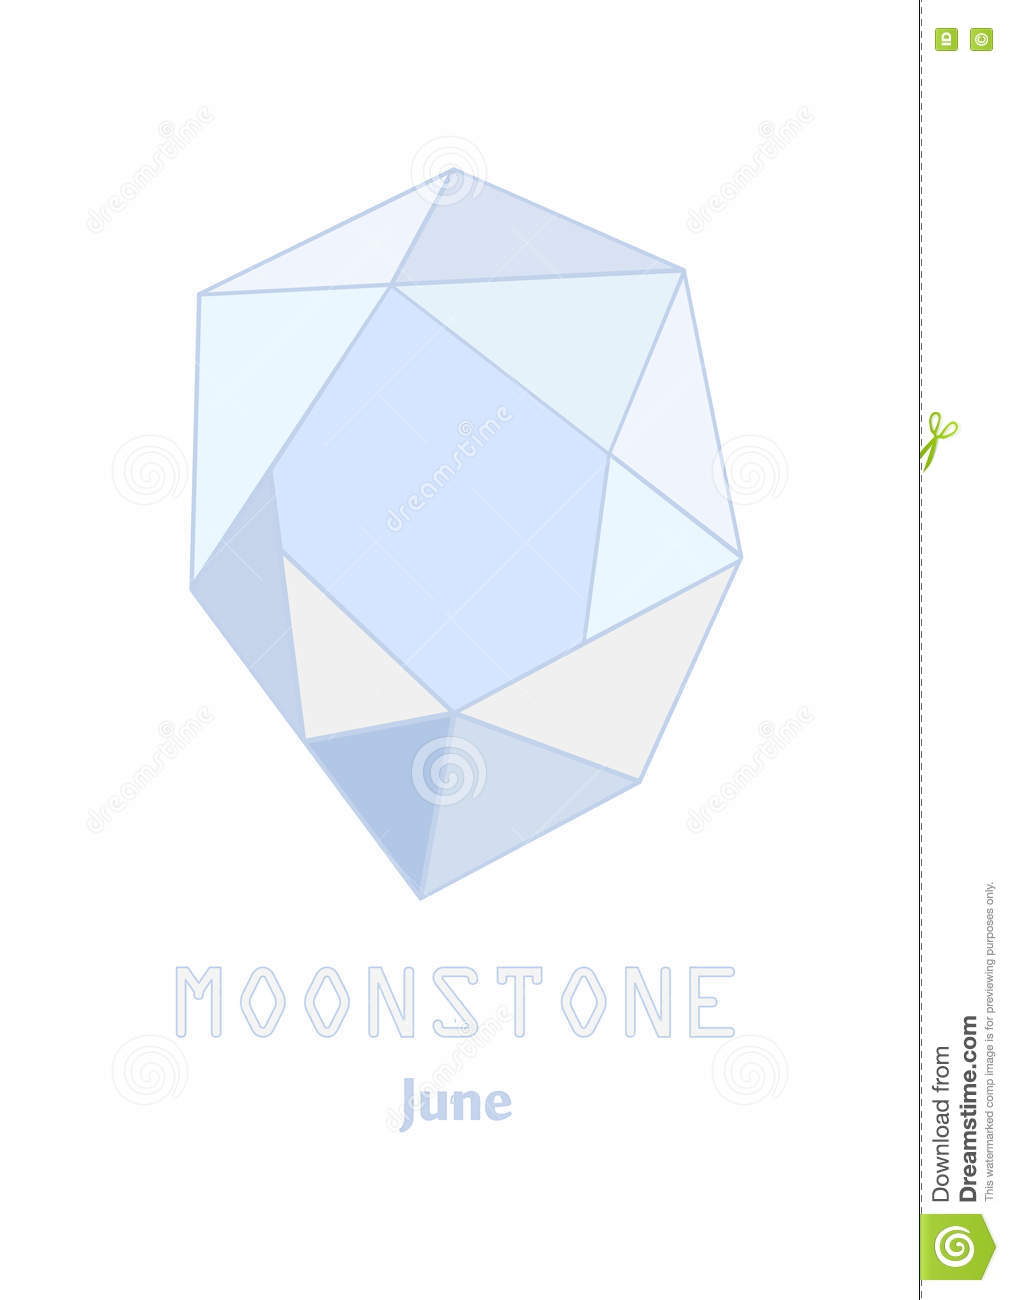 Moonstone Gem Stone, Pale Blue Crystal, Gems And Mineral Crystal.